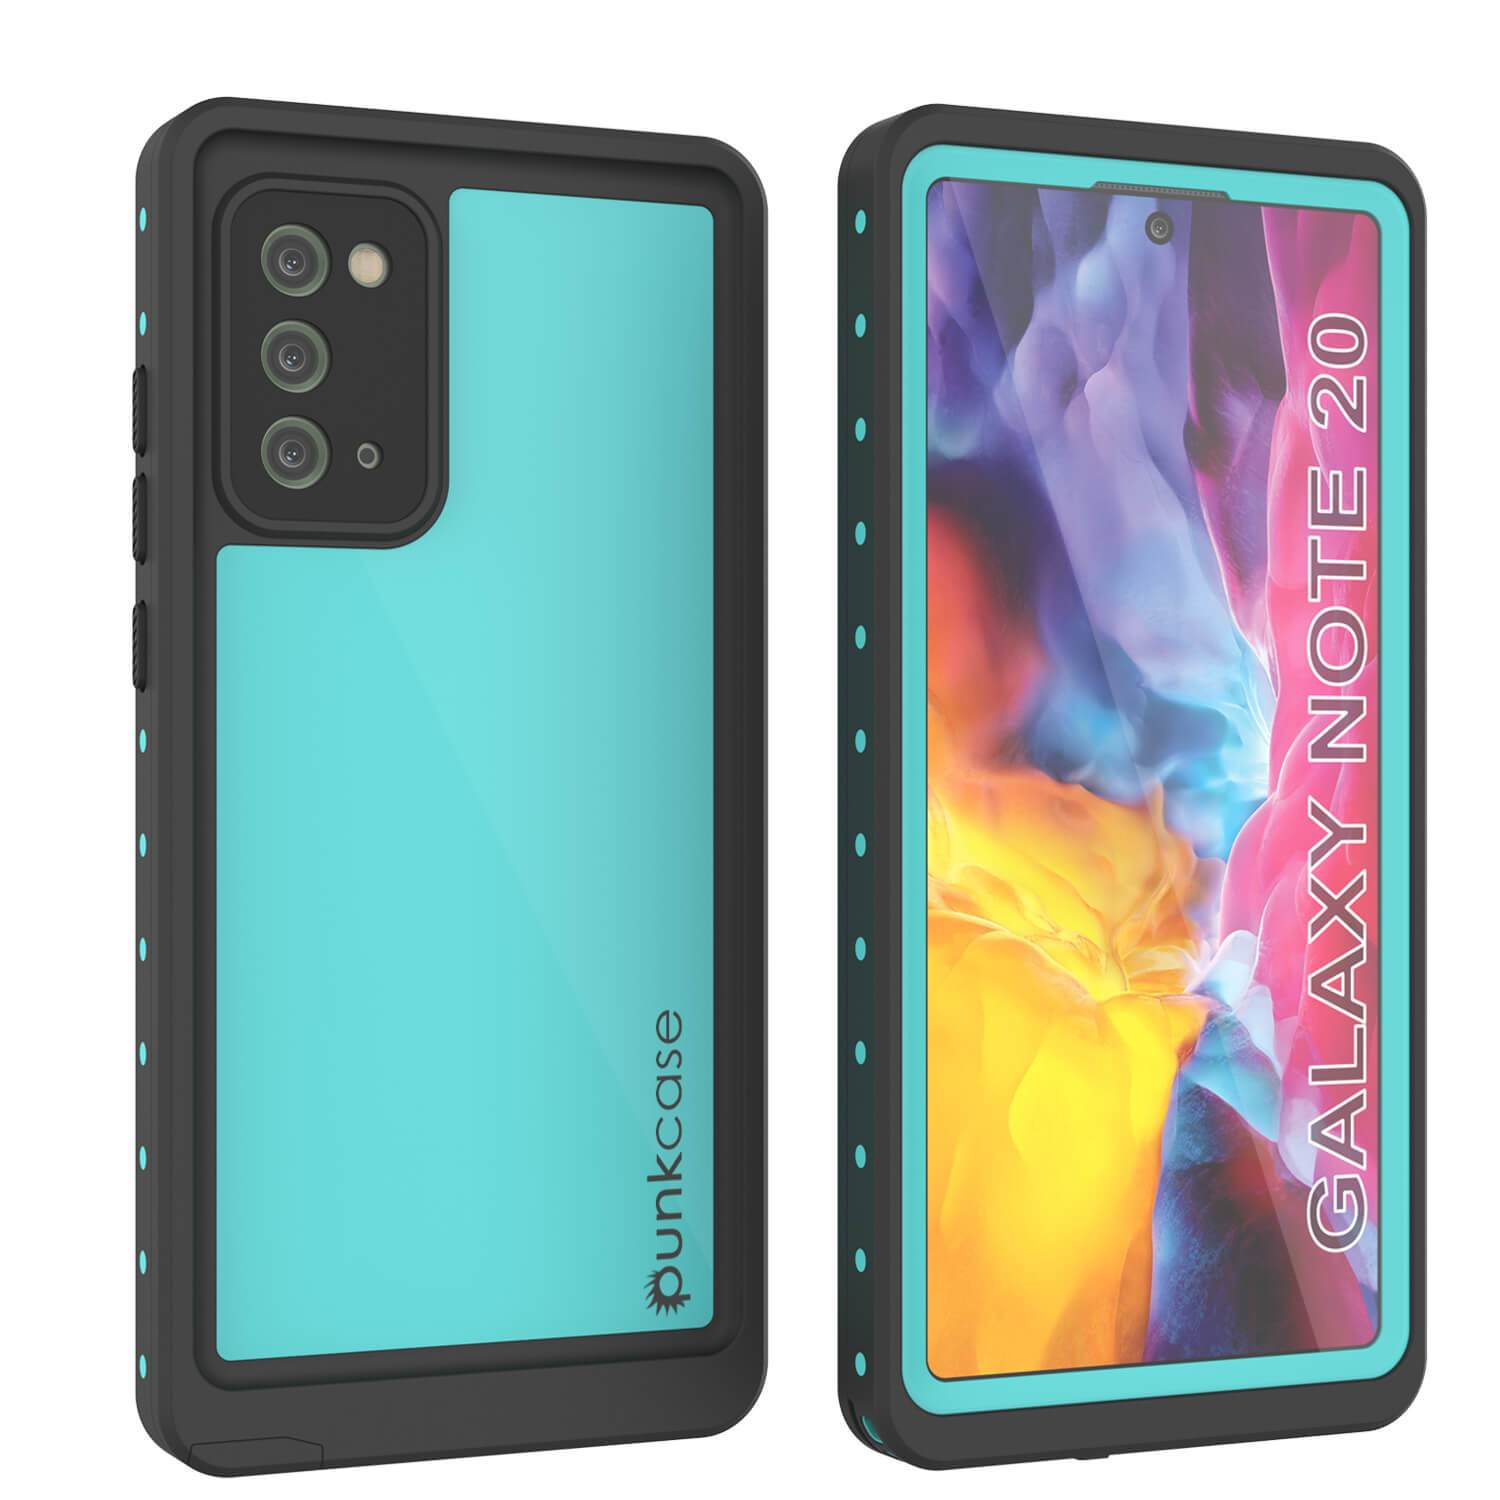 Galaxy Note 20 Waterproof Case, Punkcase Studstar Series Teal Thin Armor Cover